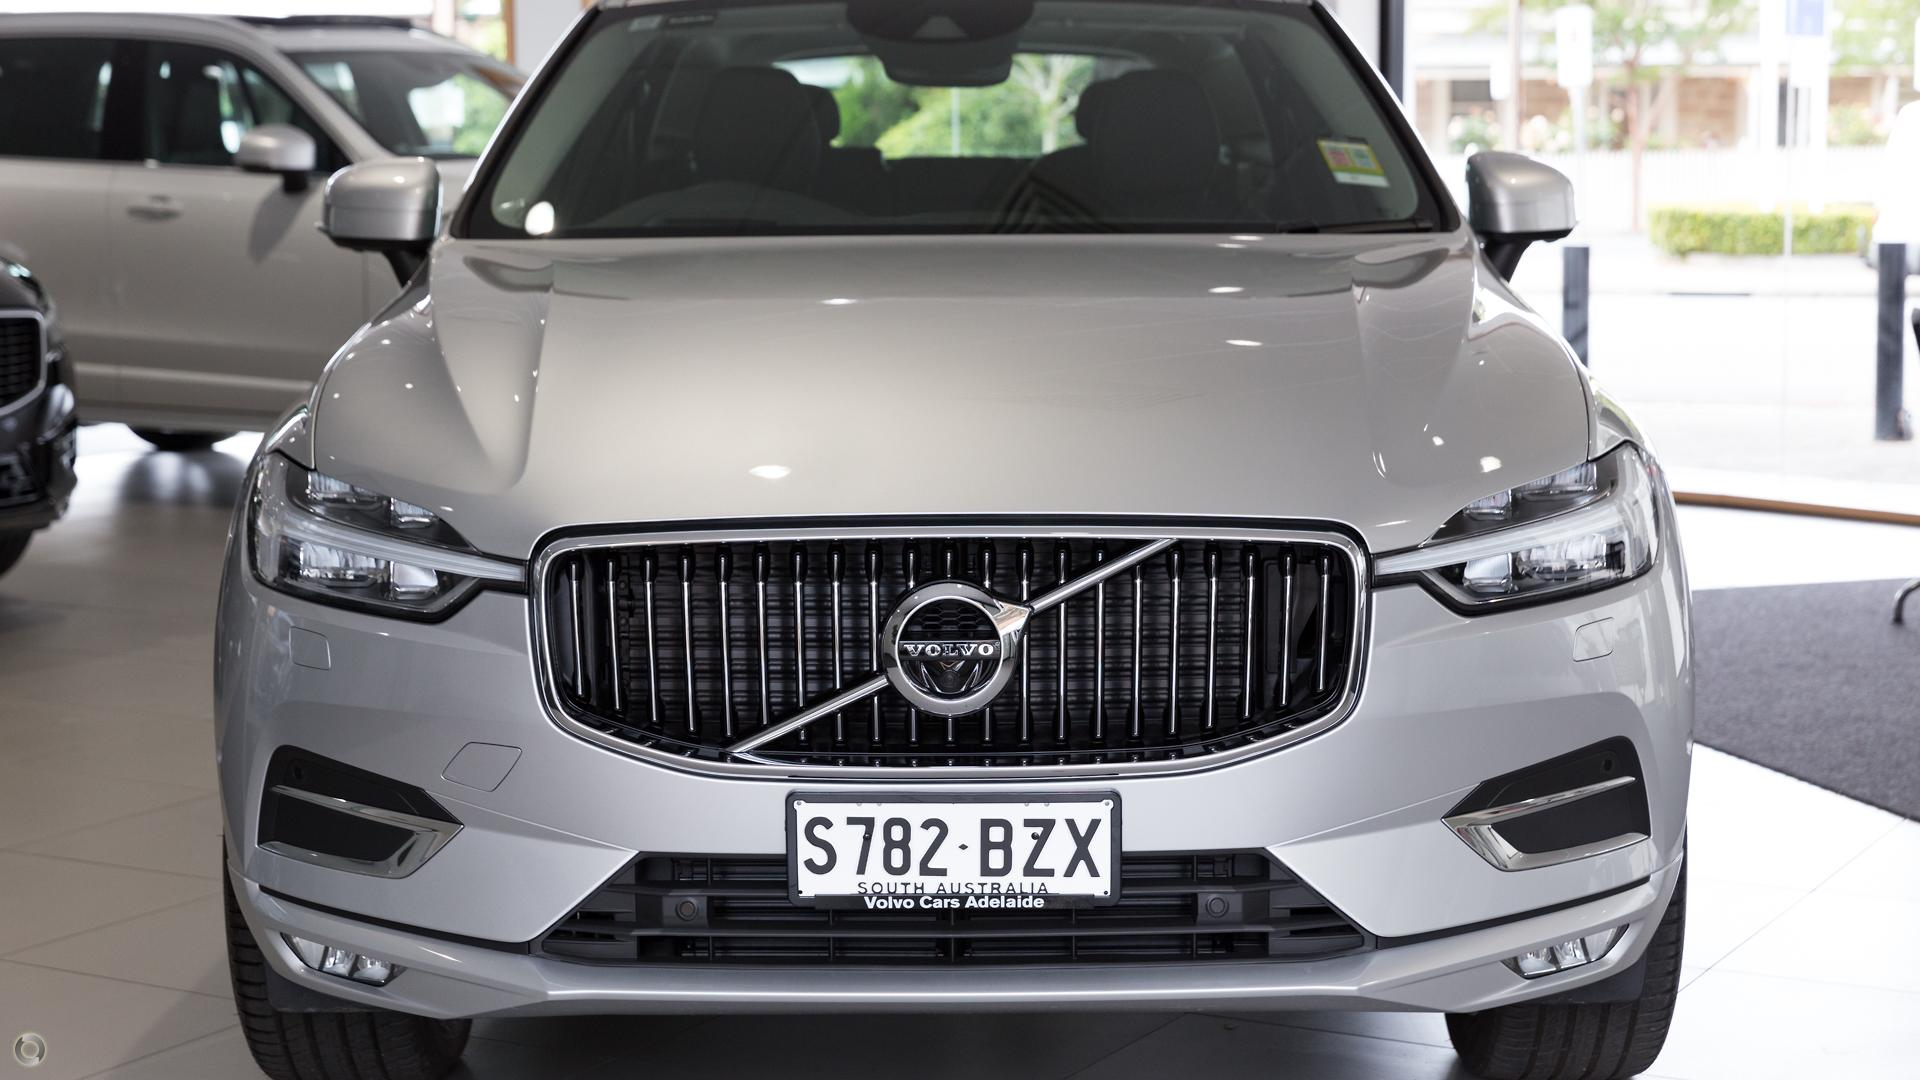 2019 Volvo XC60 D4 Inscription (No Series)